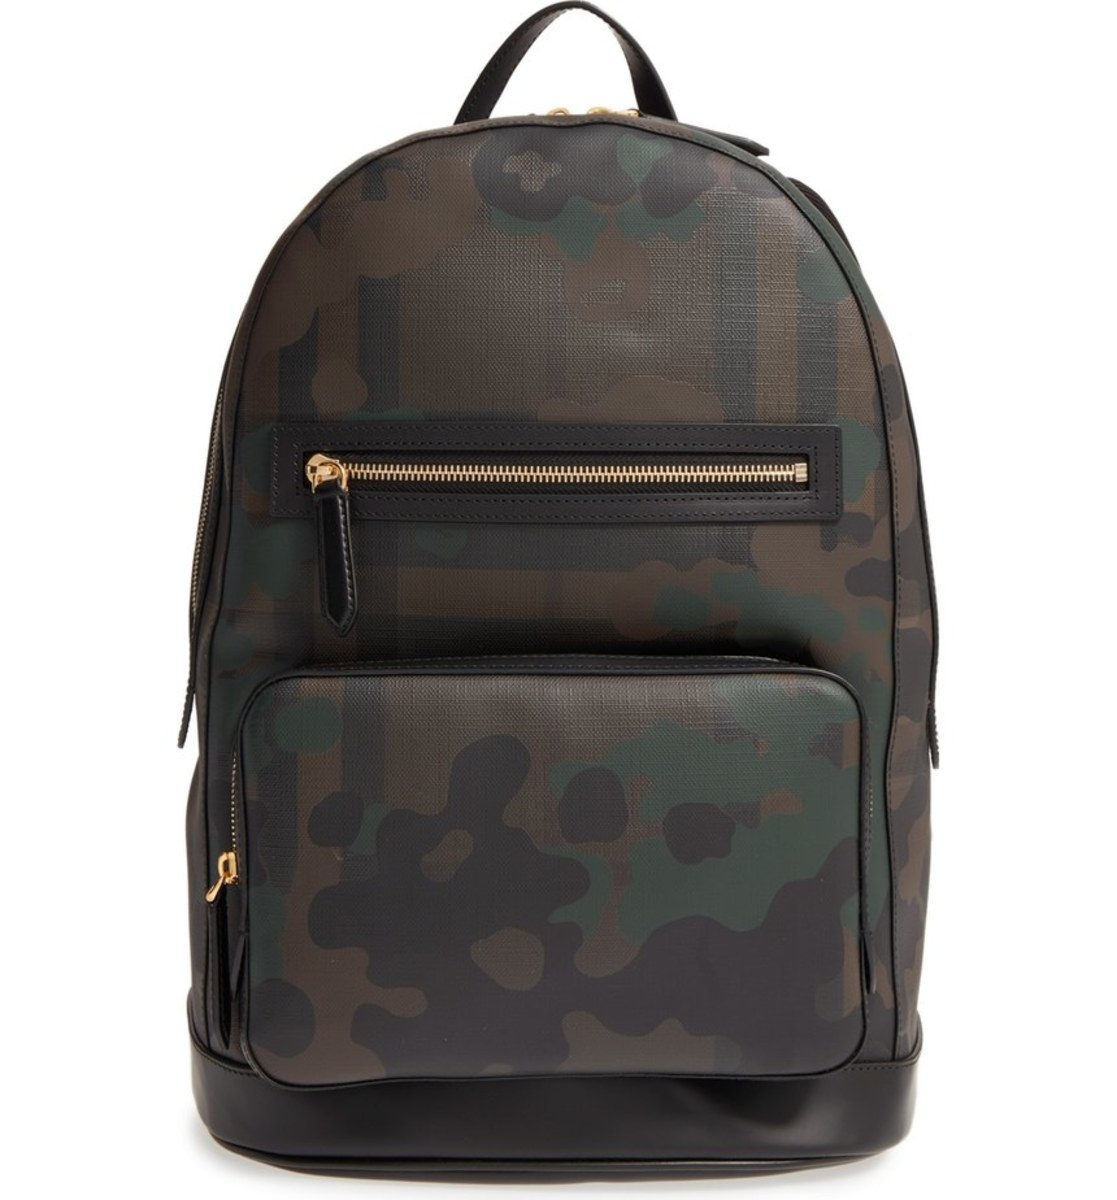 freshness-finds-luxury-camo-backpack-05.jpg